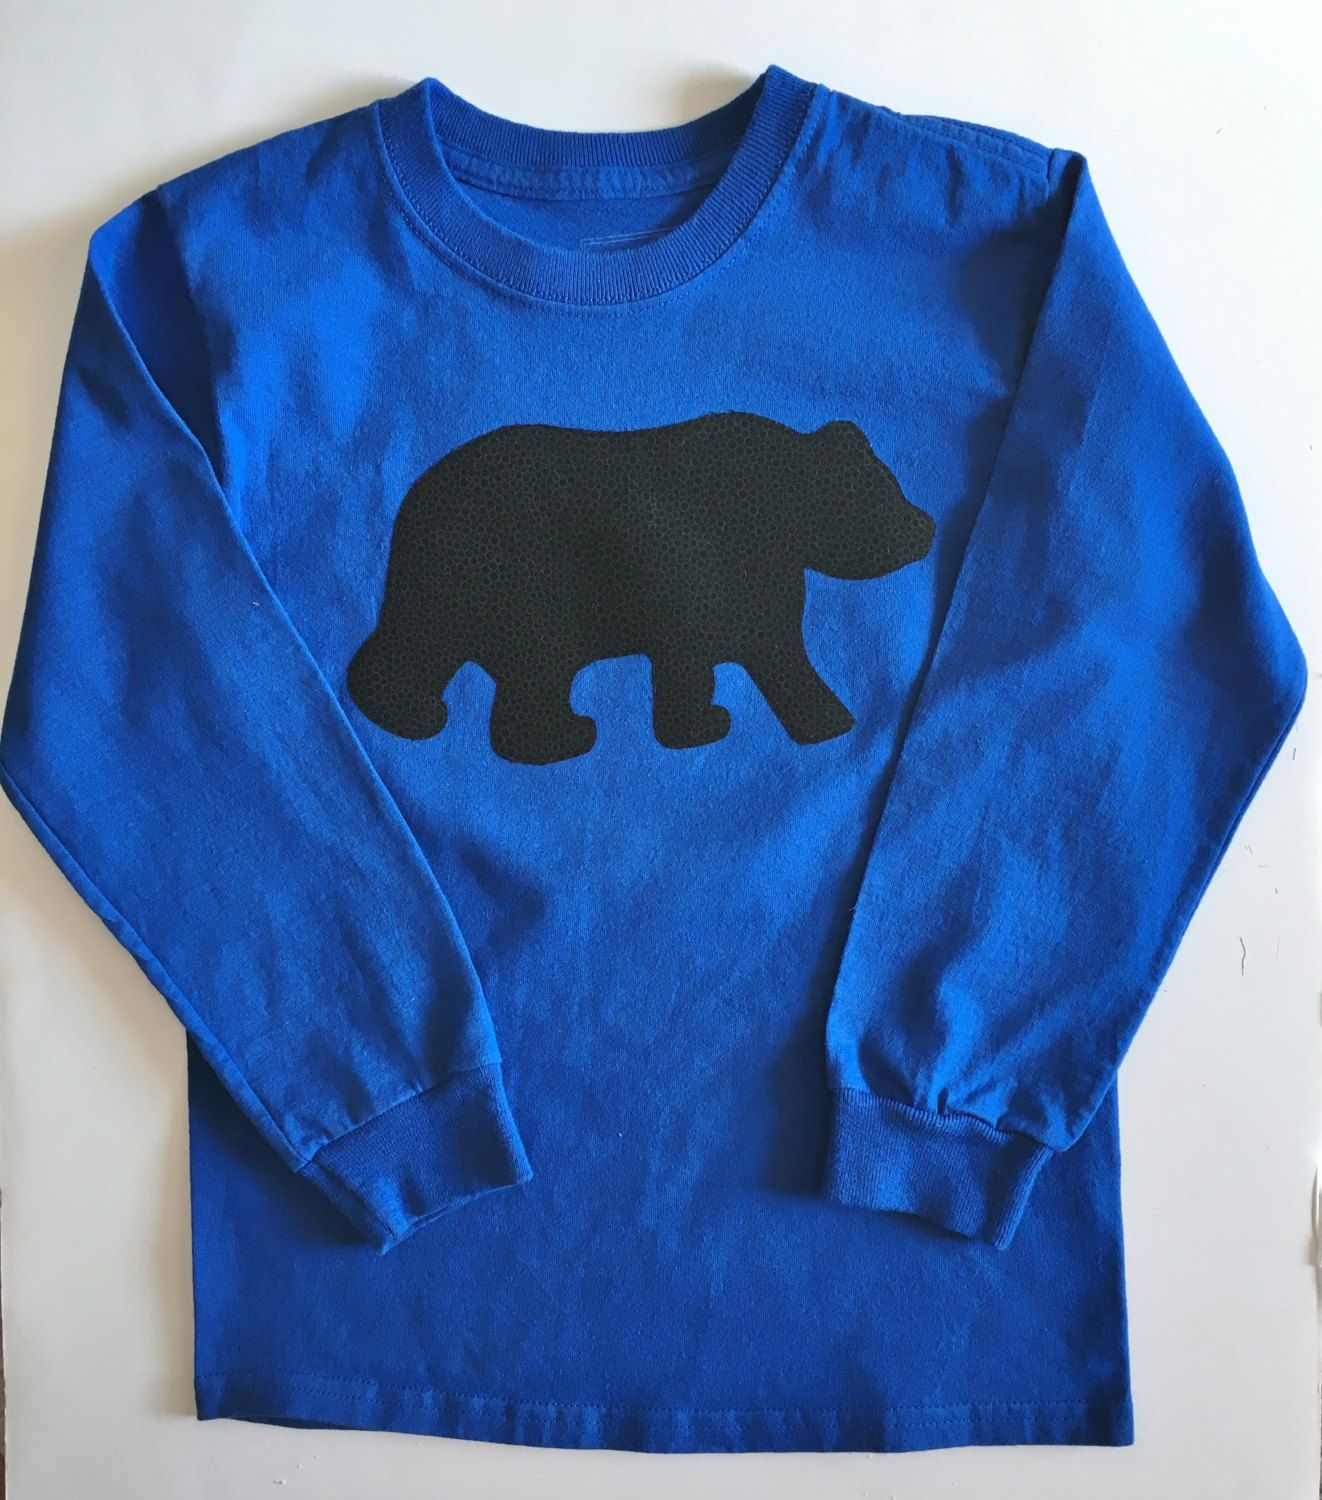 Boys t shirt size 6 to 7 long cuffed sleeve royal blue crew boys t shirt size 6 to 7 long cuffed sleeve royal blue publicscrutiny Gallery